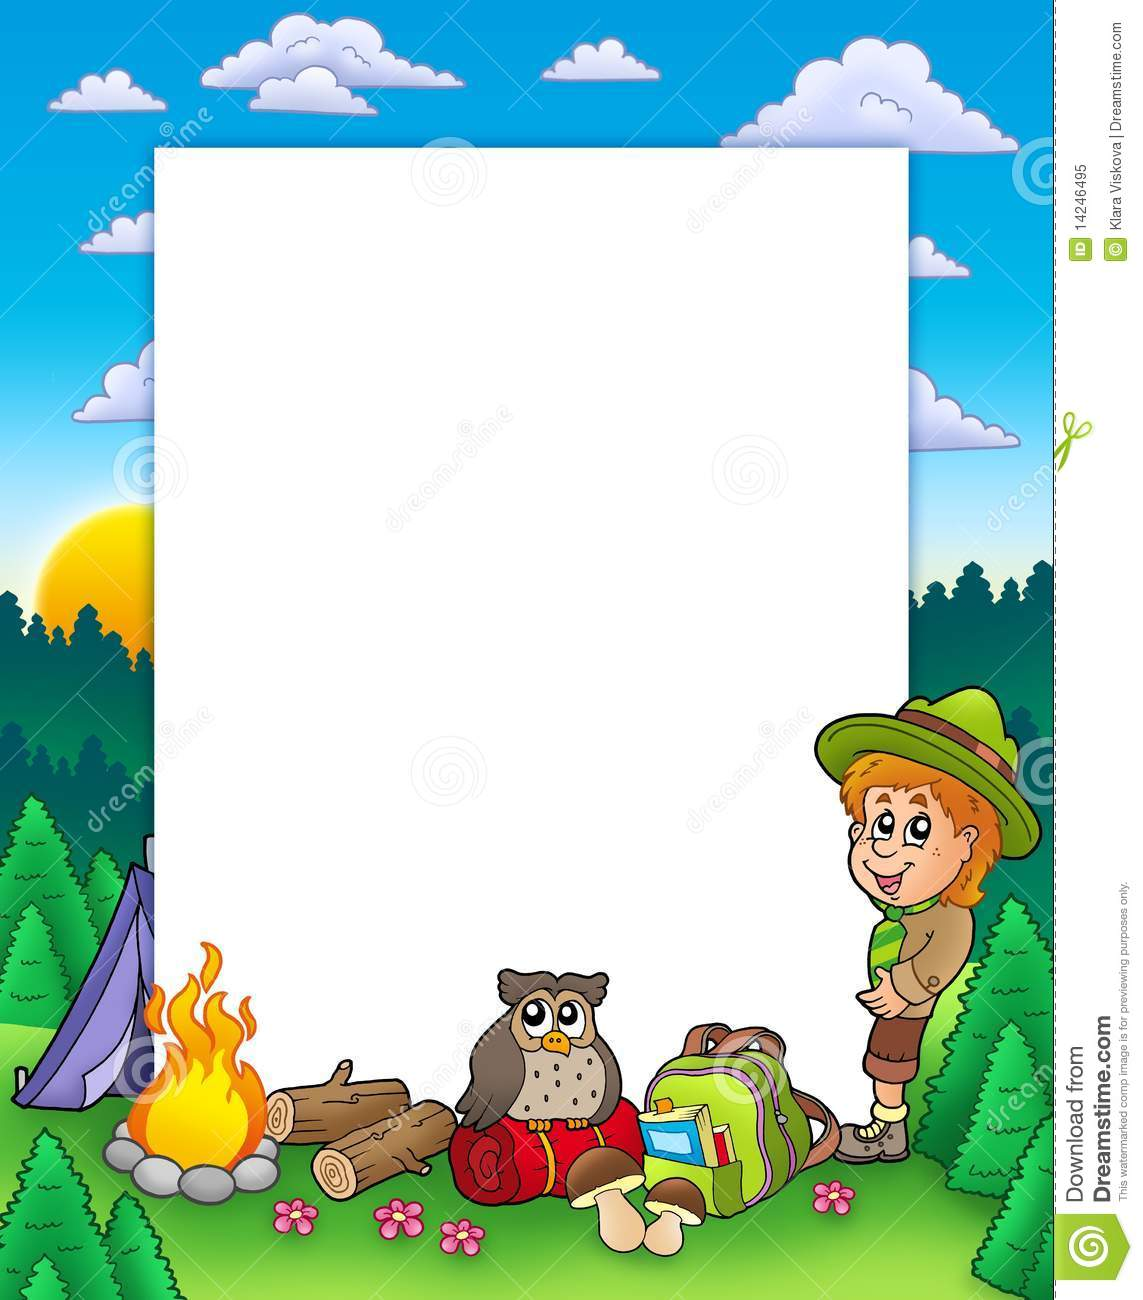 summer frame with boy scout royalty free stock photo boy scout clip art klondike boyscout clip art events